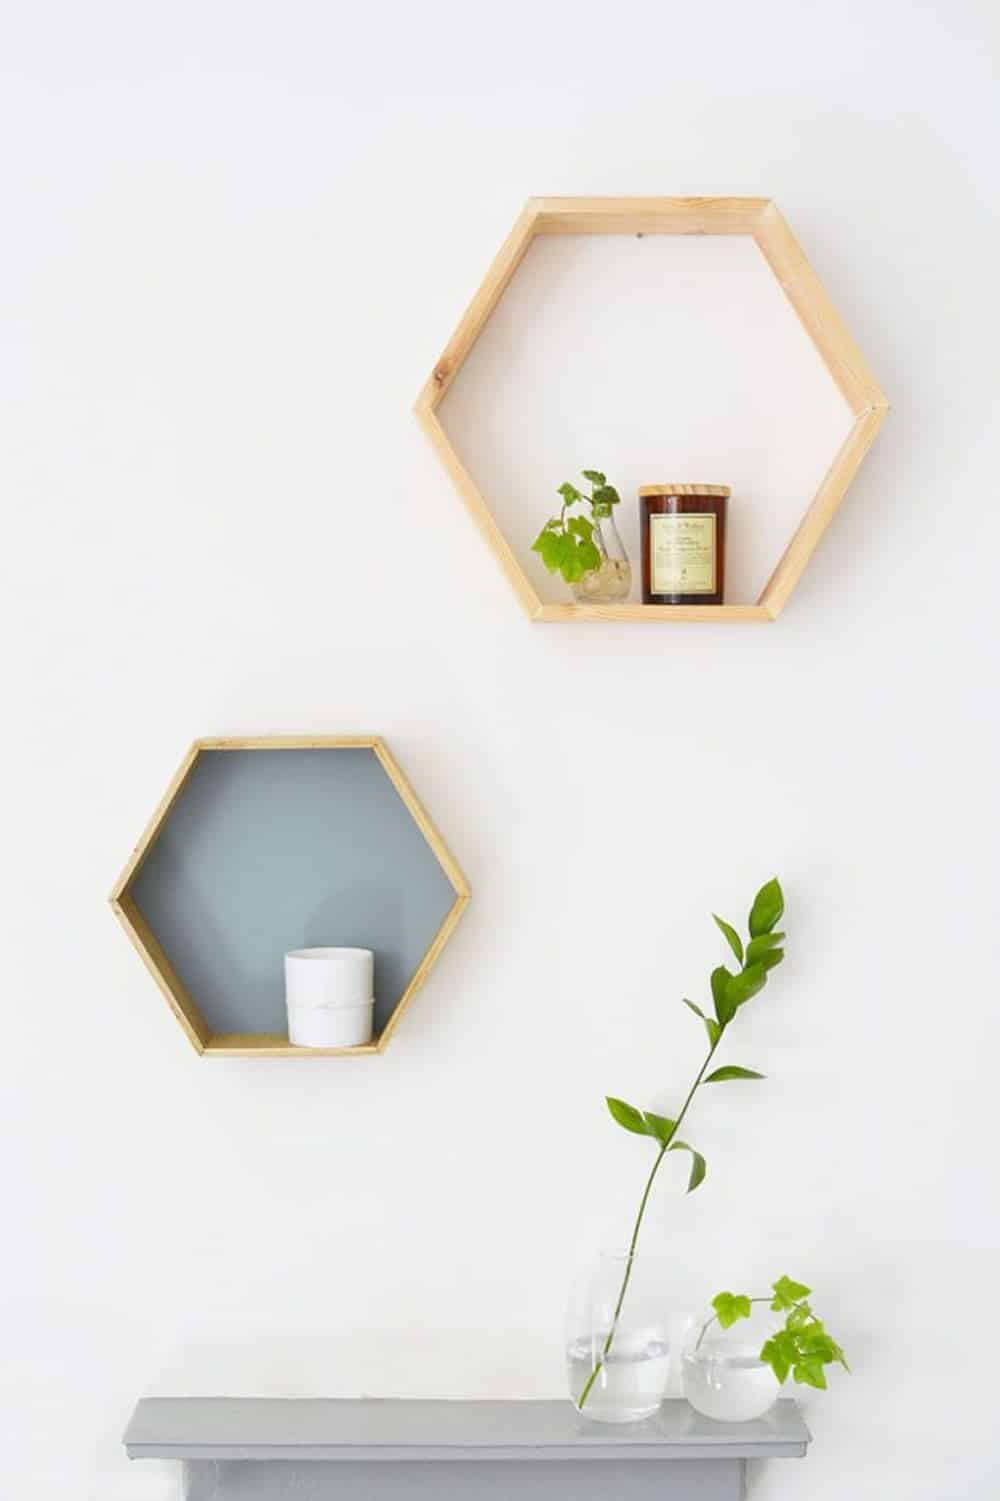 Honeycomb shelves diy